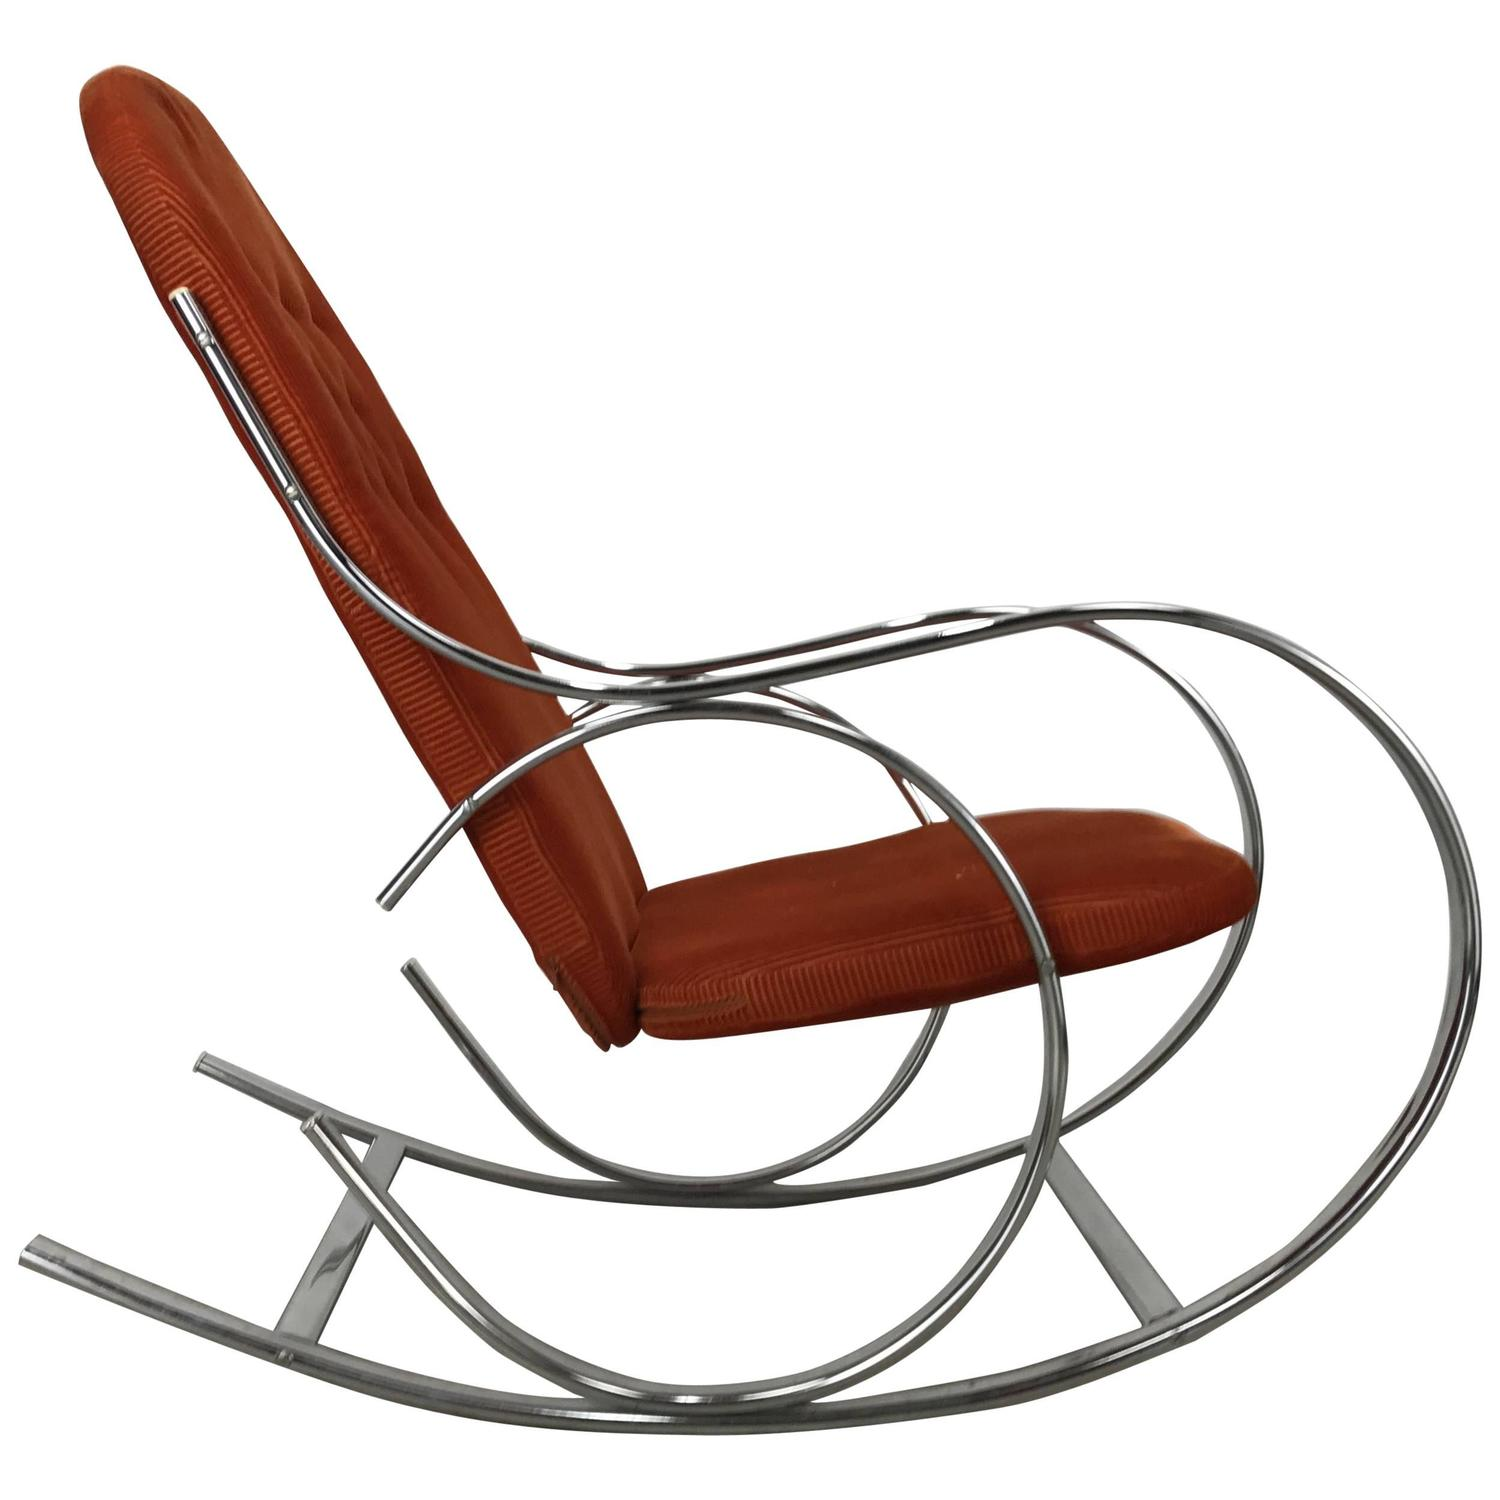 Delicieux Classic Mid Century Chrome And Fabric Rocking Chair, Milo Baughman